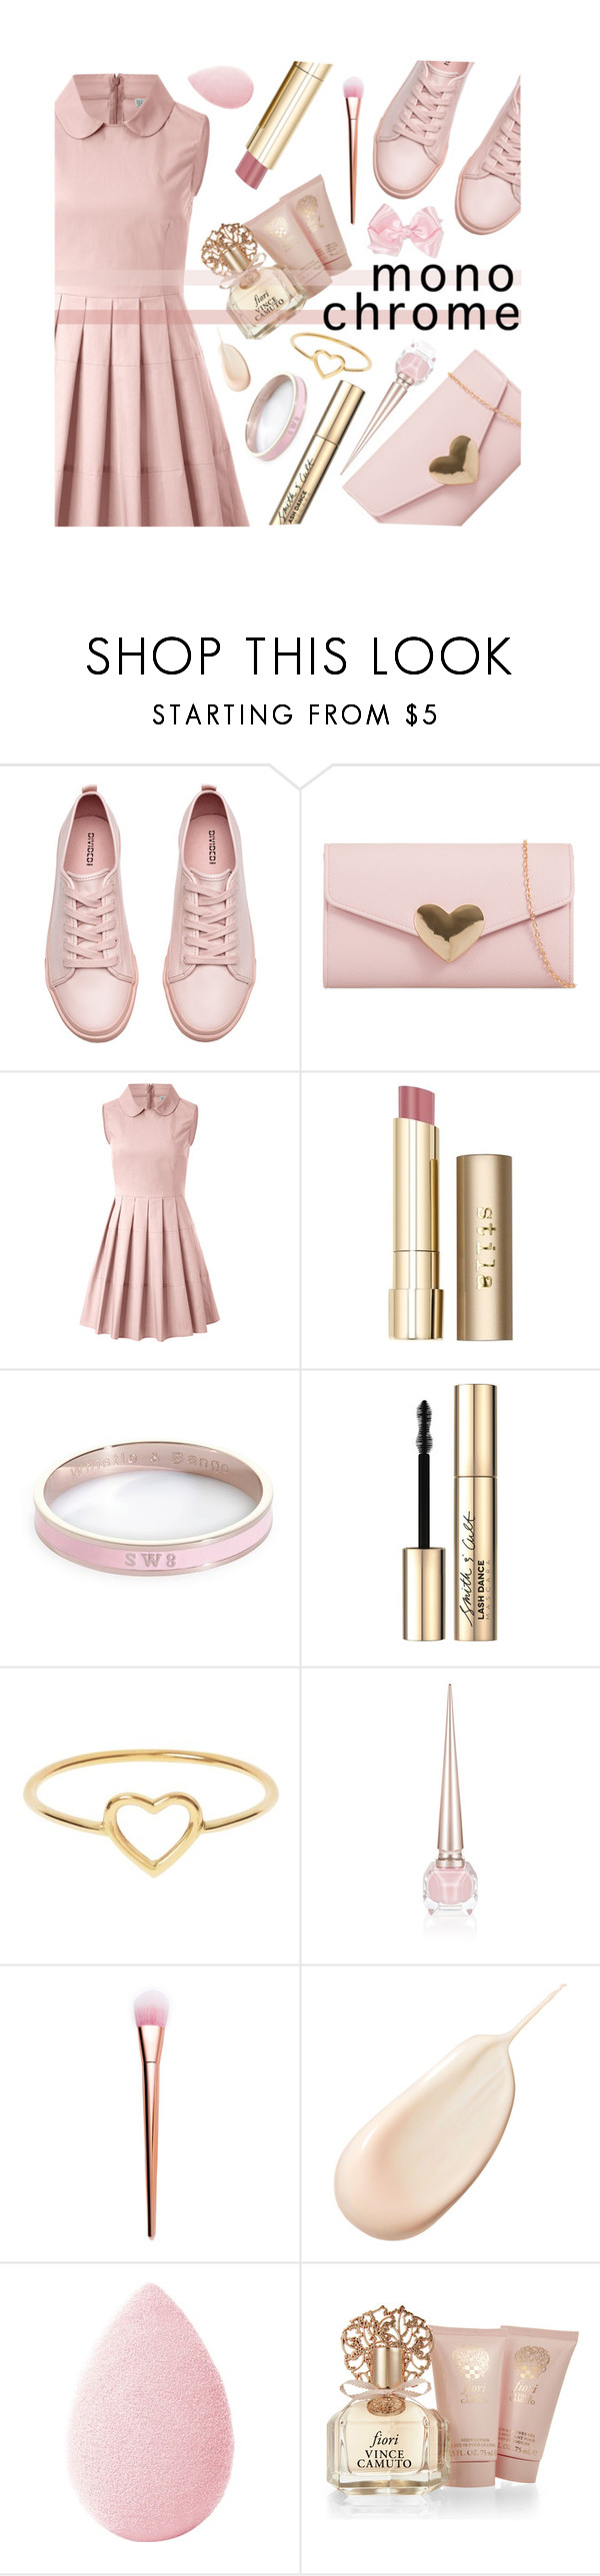 """Pink from Head to Toe (Contest Entry)"" by mormon-girl ❤ liked on Polyvore featuring H&M, RED Valentino, Stila, Whistle & Bango, Smith & Cult, Love Is, Christian Louboutin, Clé de Peau Beauté, beautyblender and Vince Camuto"